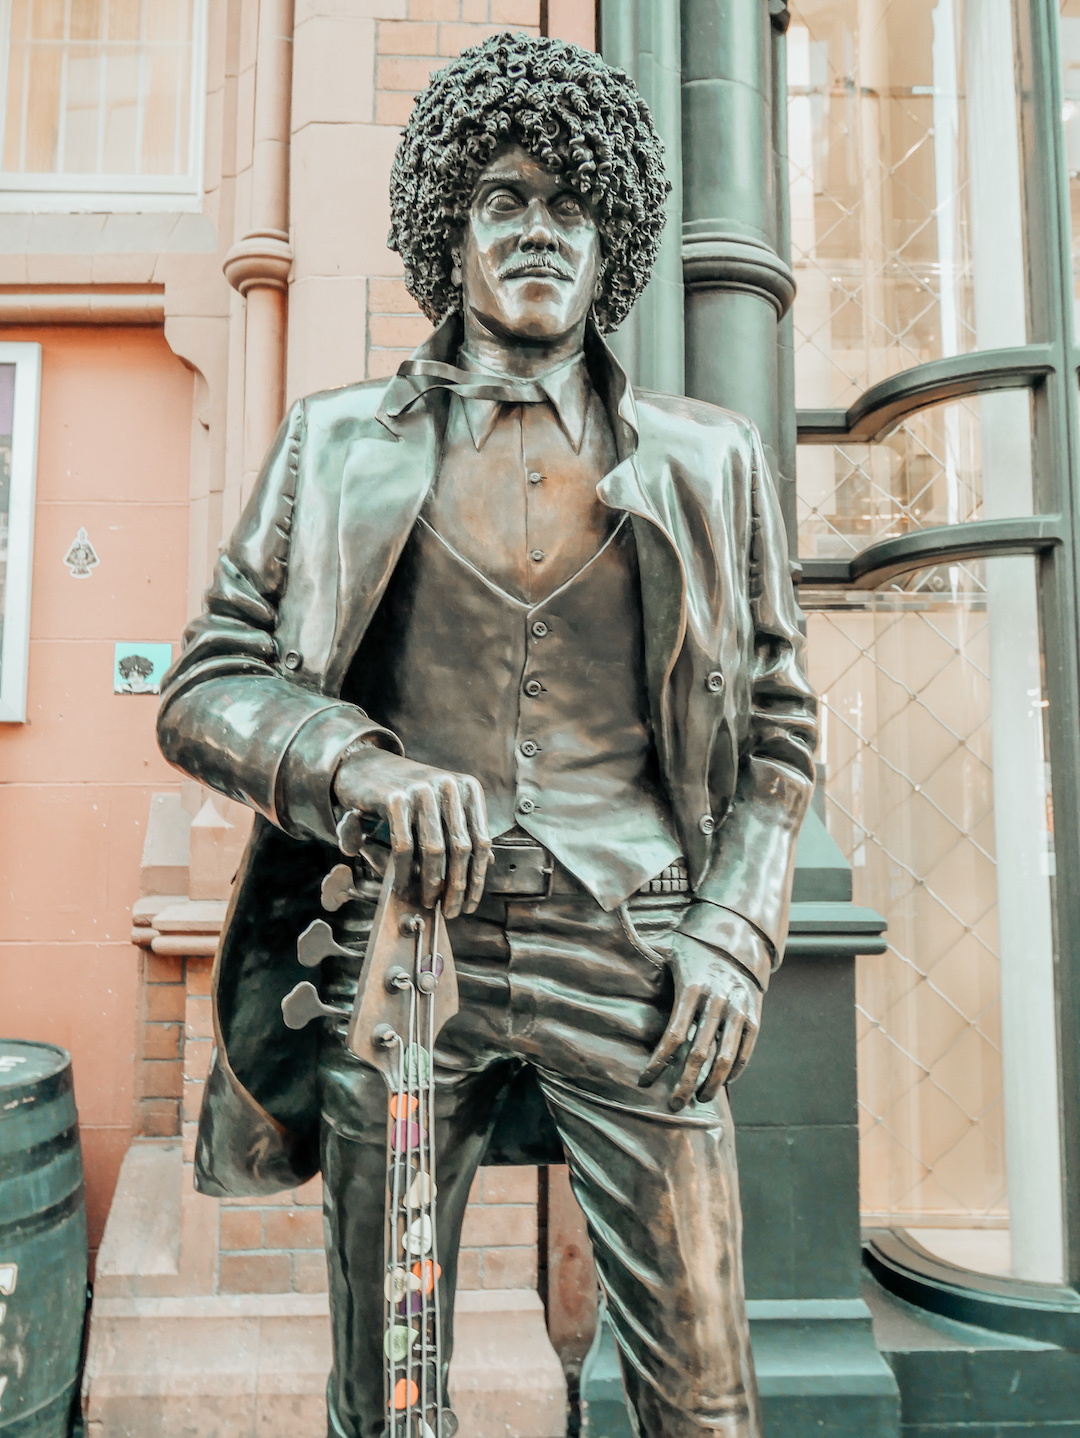 Things To Do In Dublin: Visit The Philip Lynott Statue